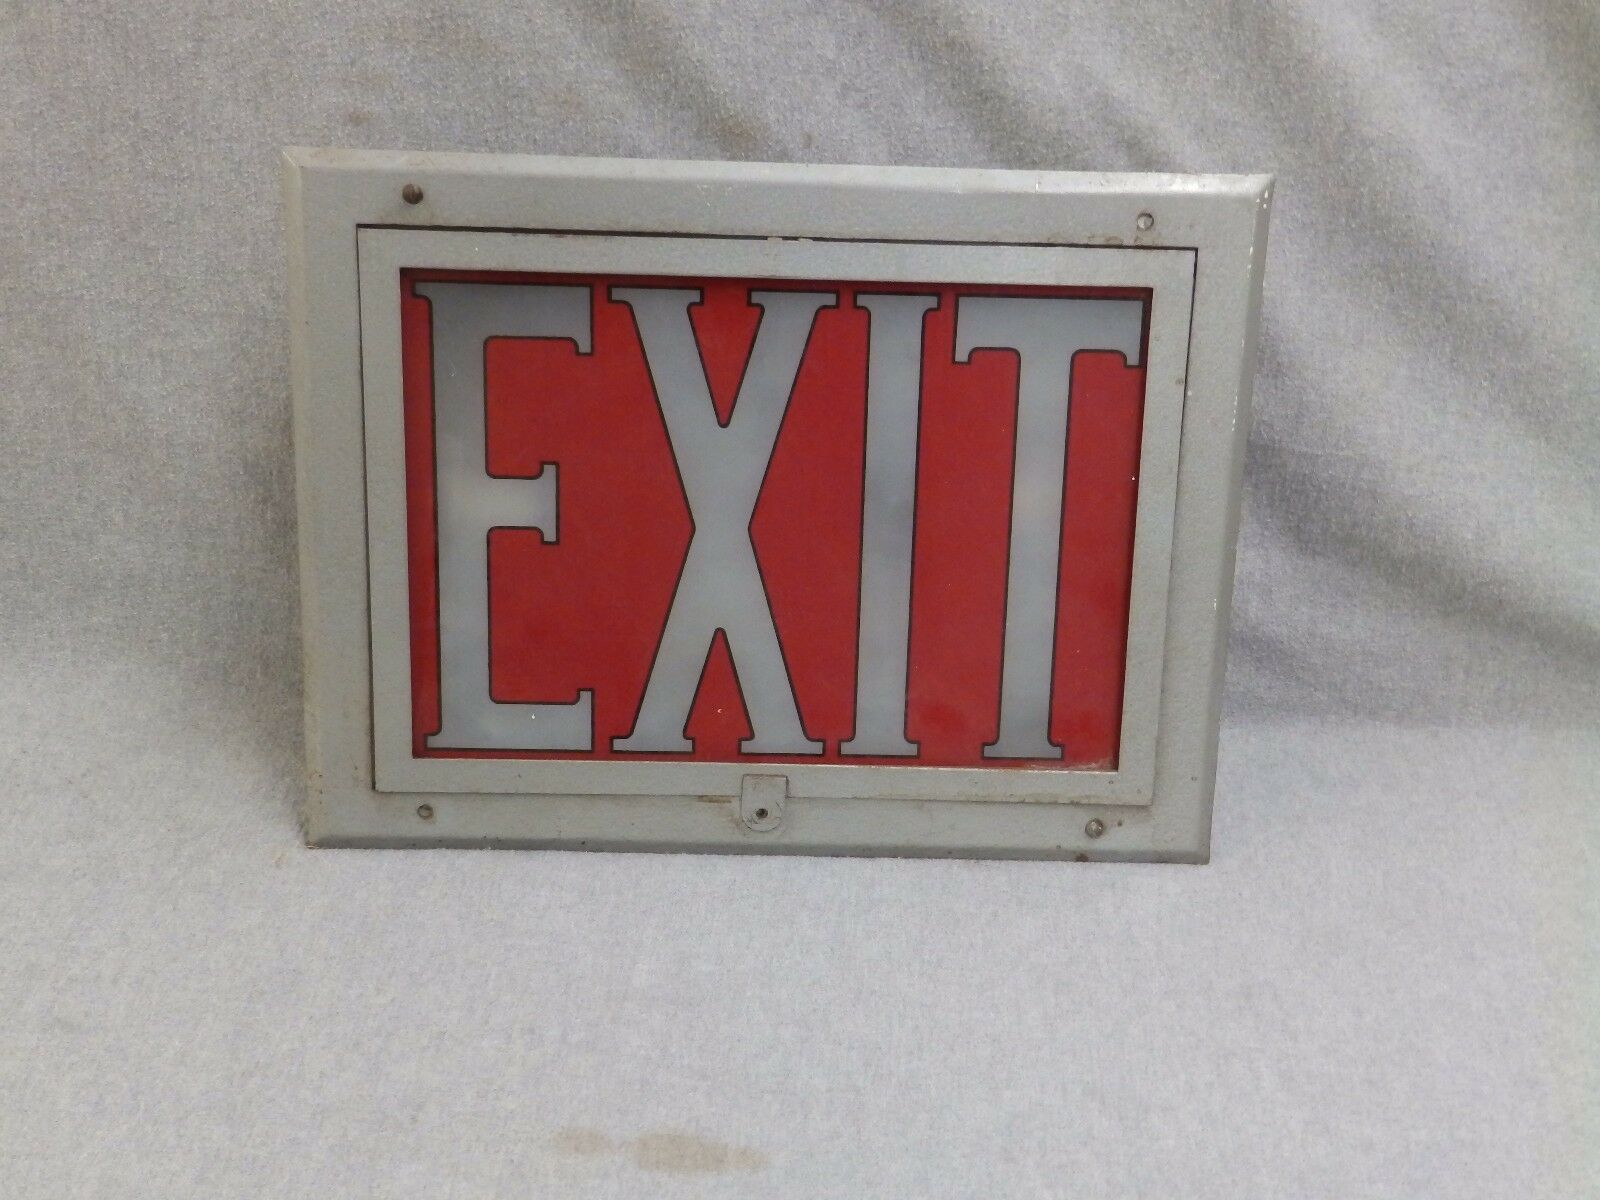 Vtg Art Deco Theater Recessed Exit Sign Light Fixture Sconce Glass Panel 889-16